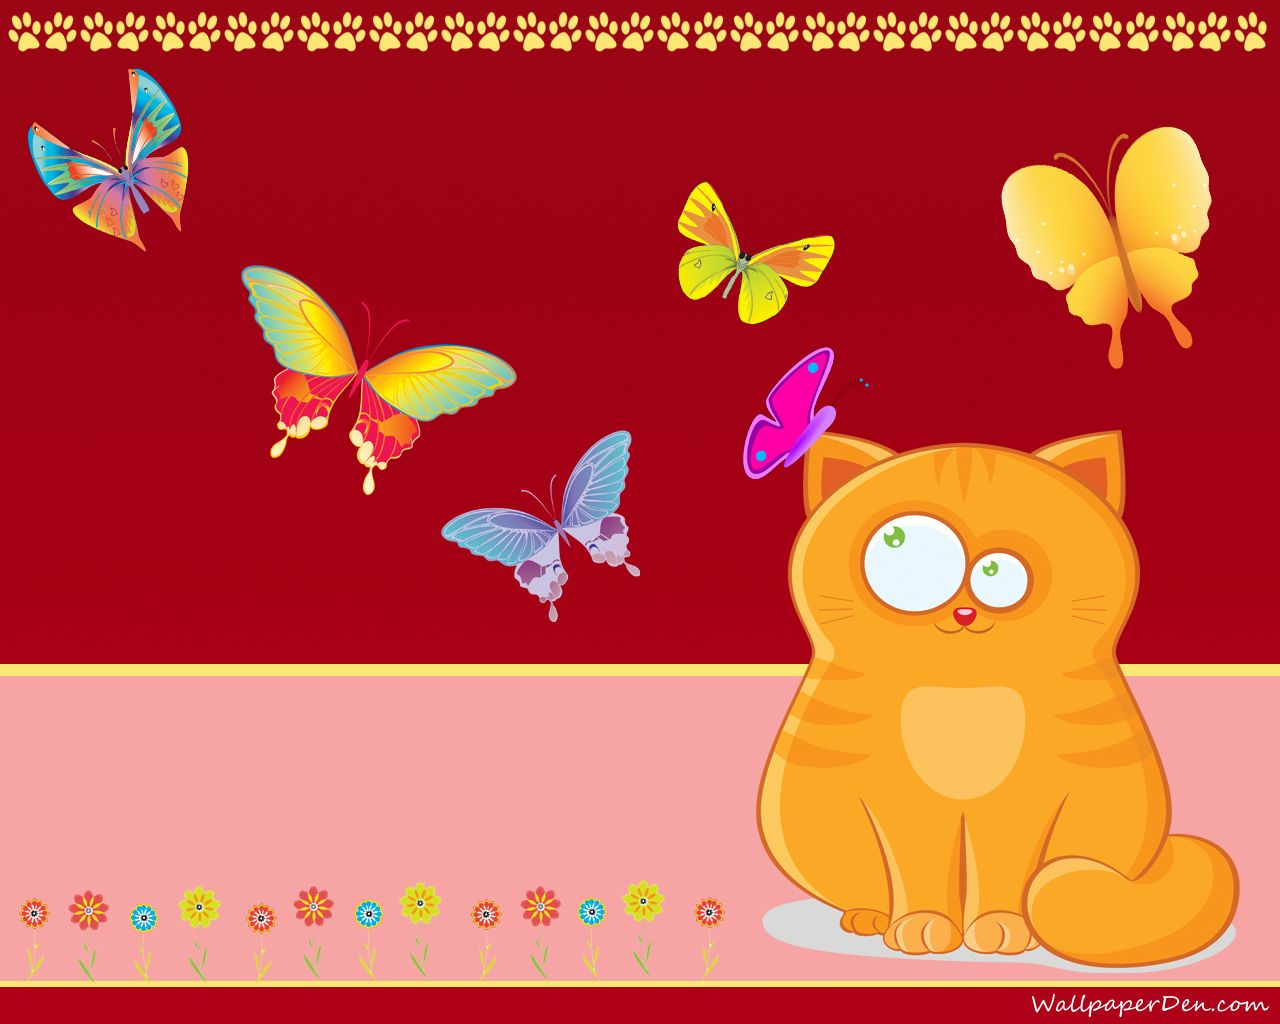 Cute cartoon cats wallpapers 1280x1024px drawings cute - Cat wallpaper cartoon ...